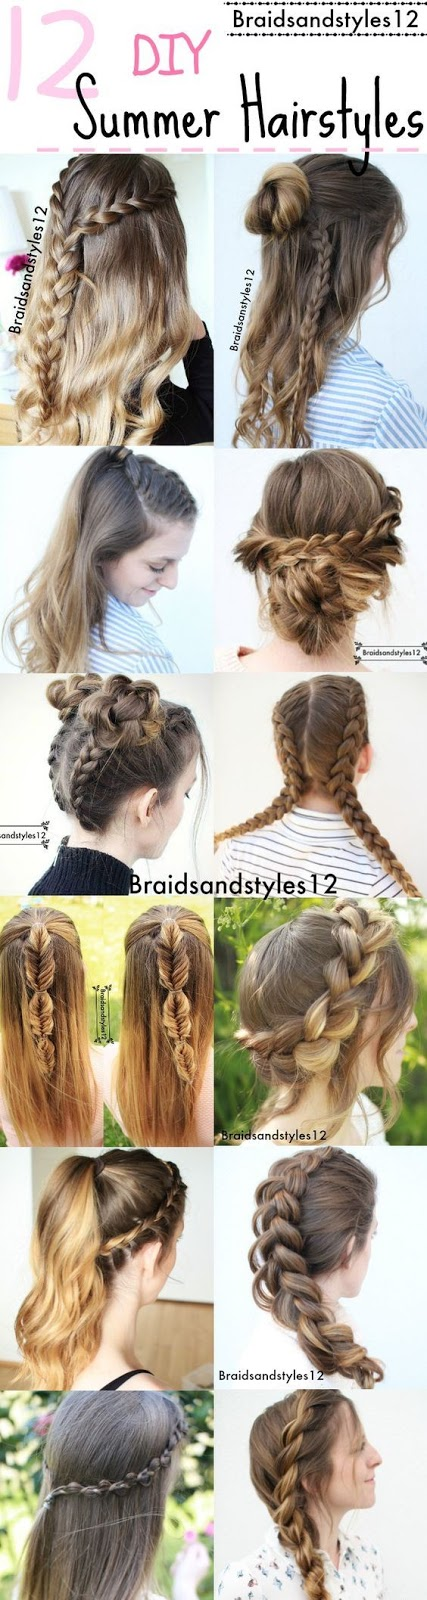 amazing summer hairstyle ideas